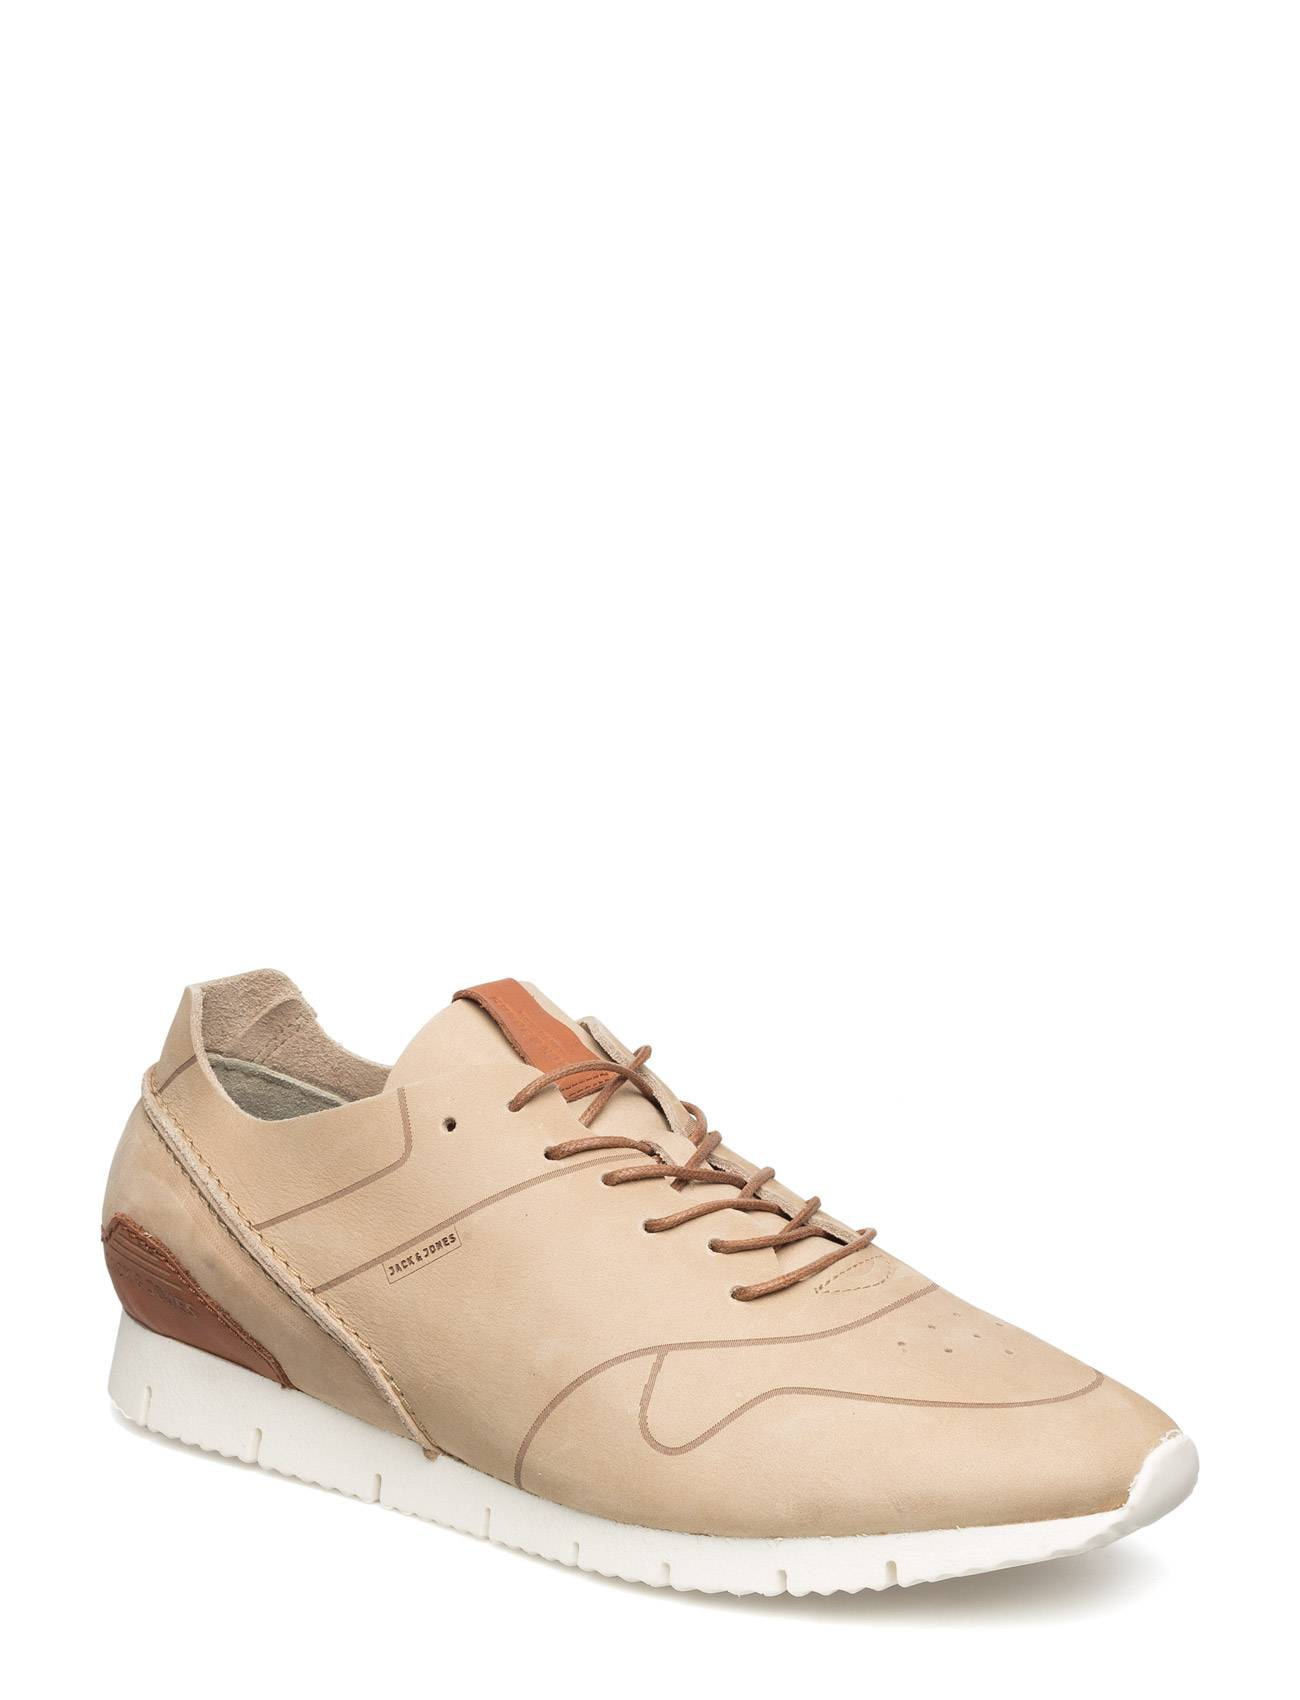 Jack & Jones Jjrobson Leather Sneaker Plaza Taupe